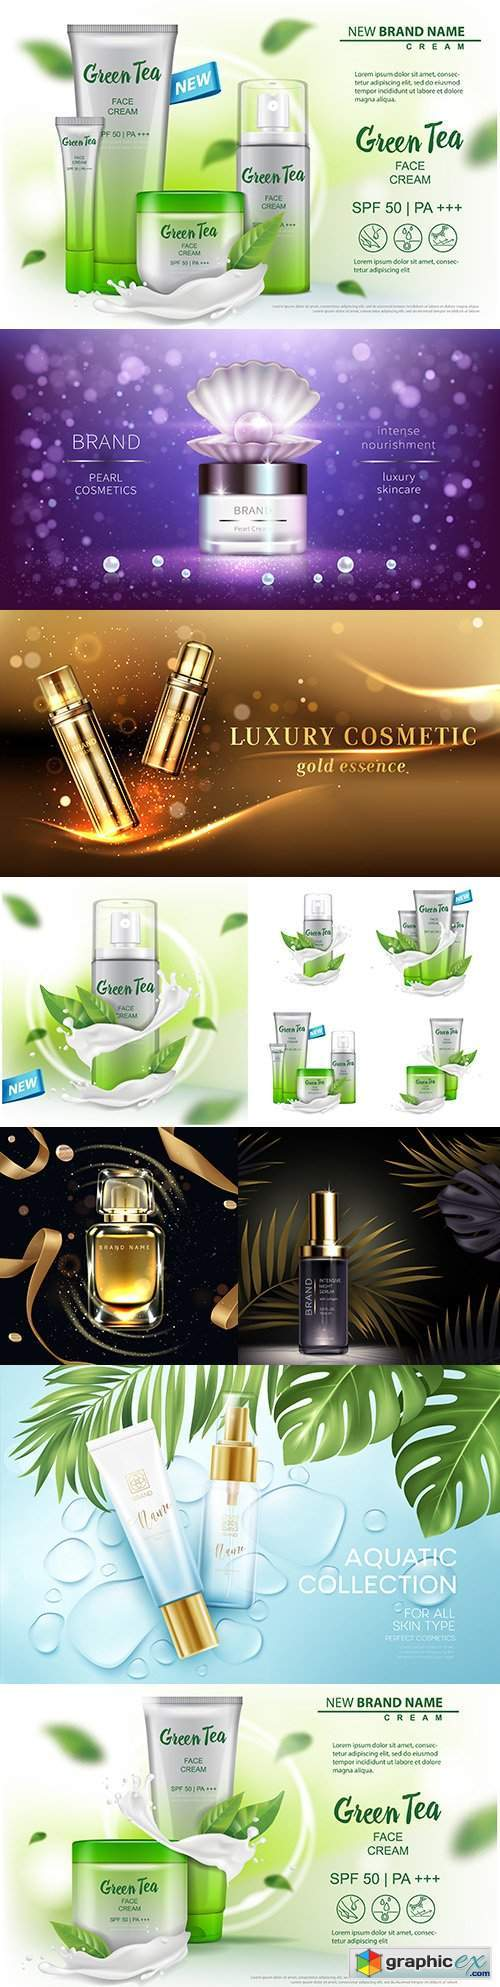 Cosmetic product advertising for magazine packaging design